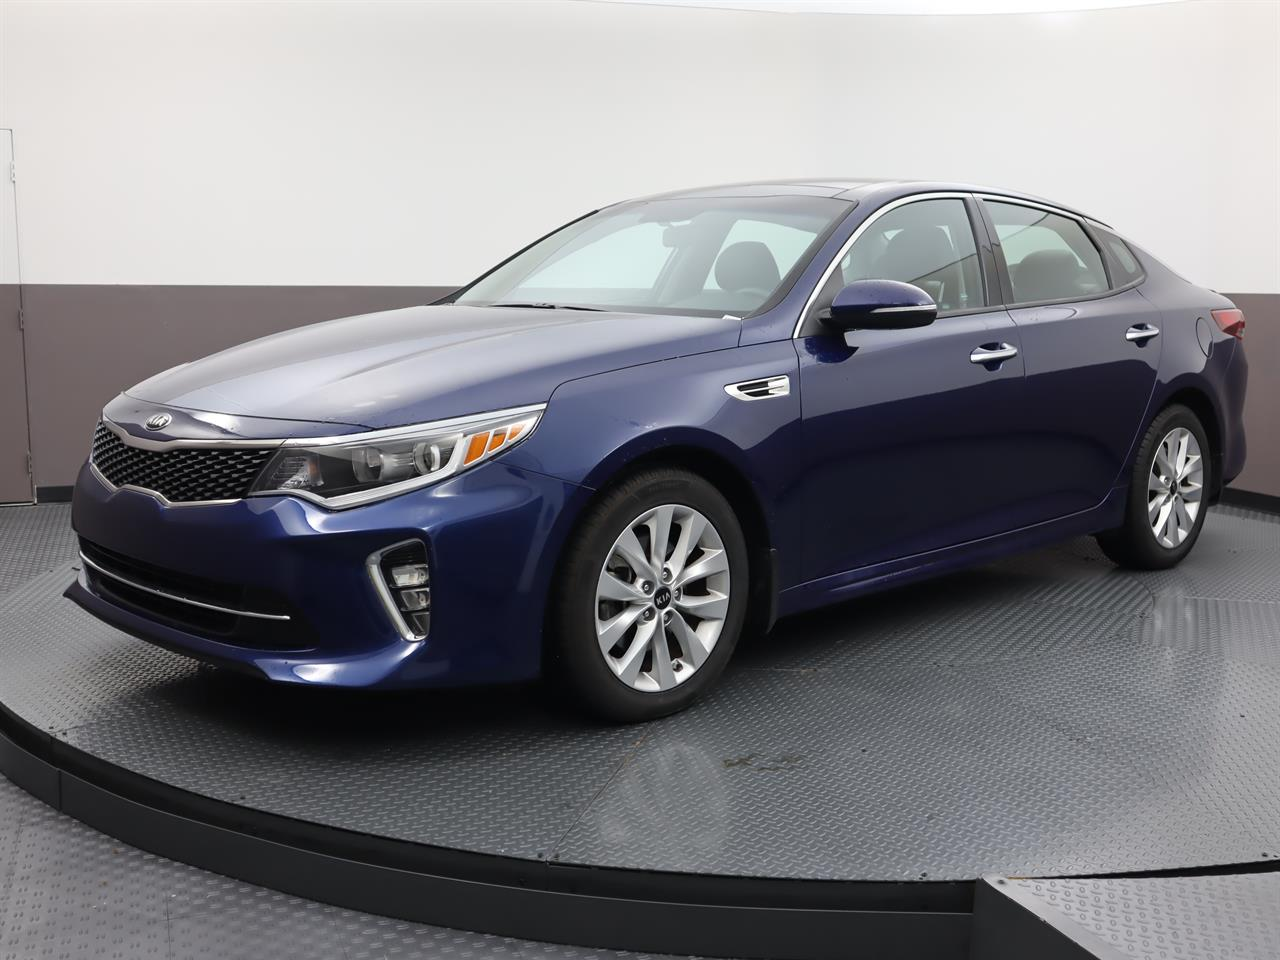 Used KIA OPTIMA 2018 MARGATE S